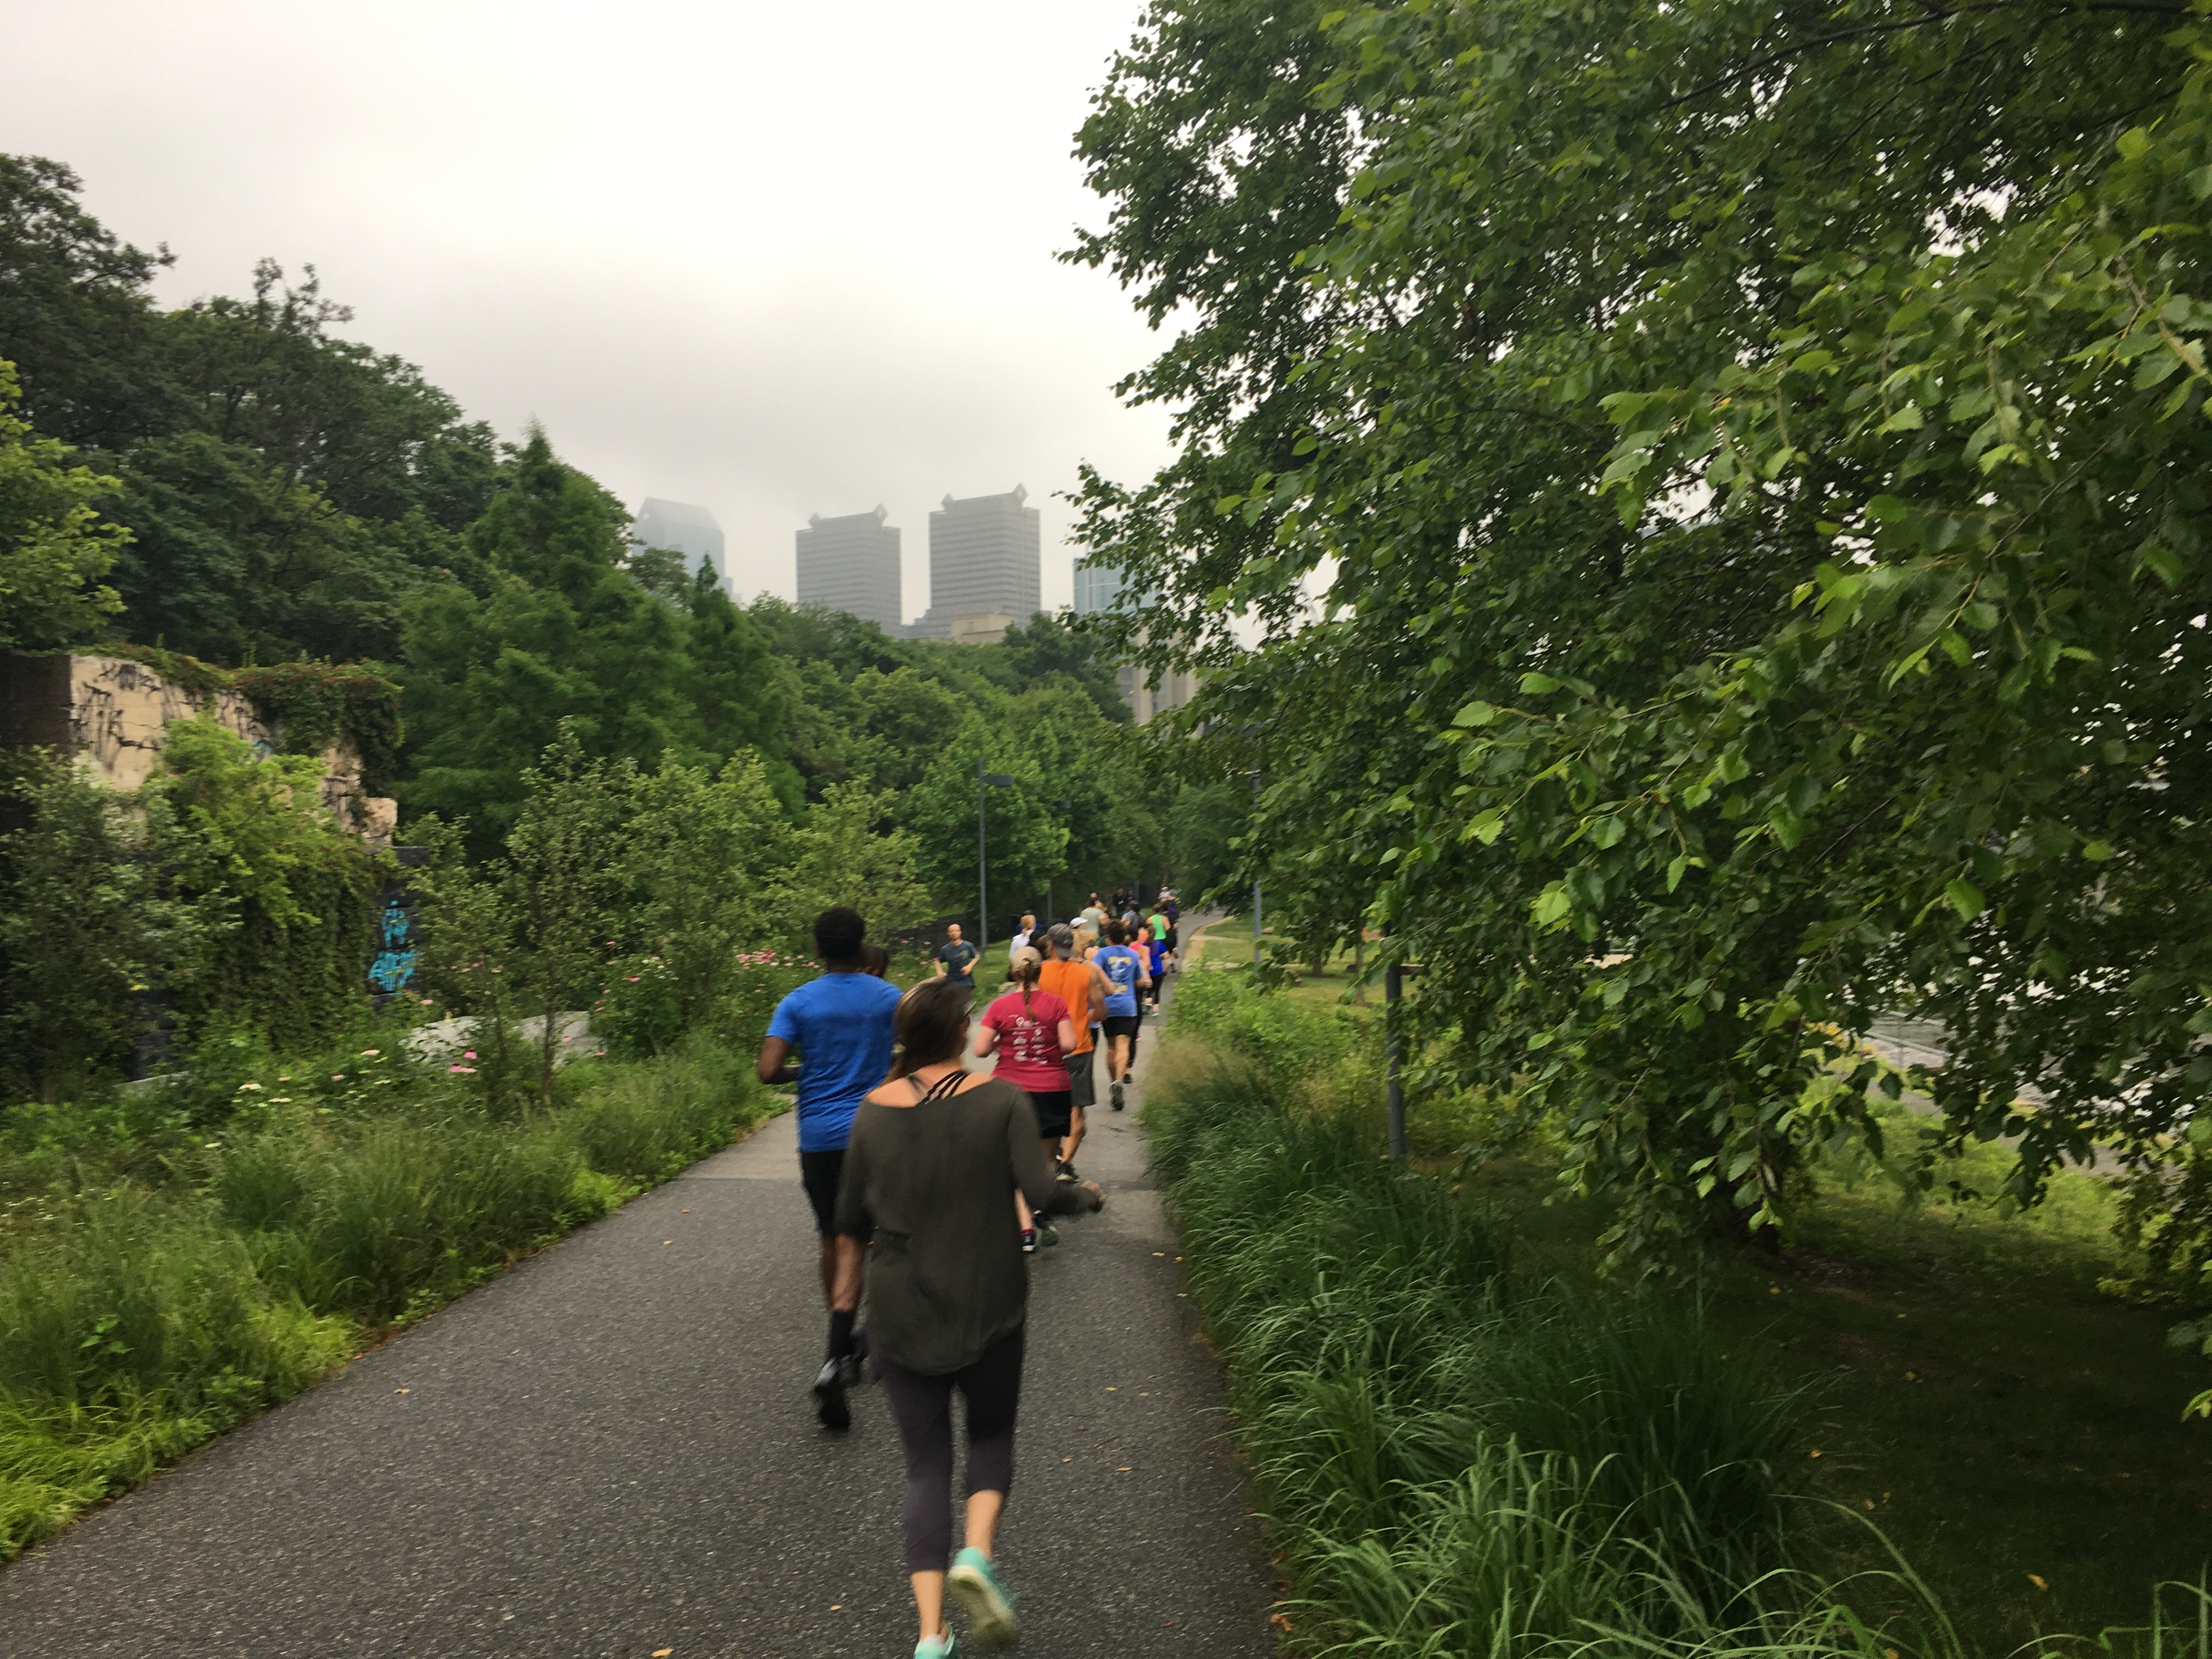 Runners on Schuylkill River Trail with some skyscrapers in the distance and trees on both sides.